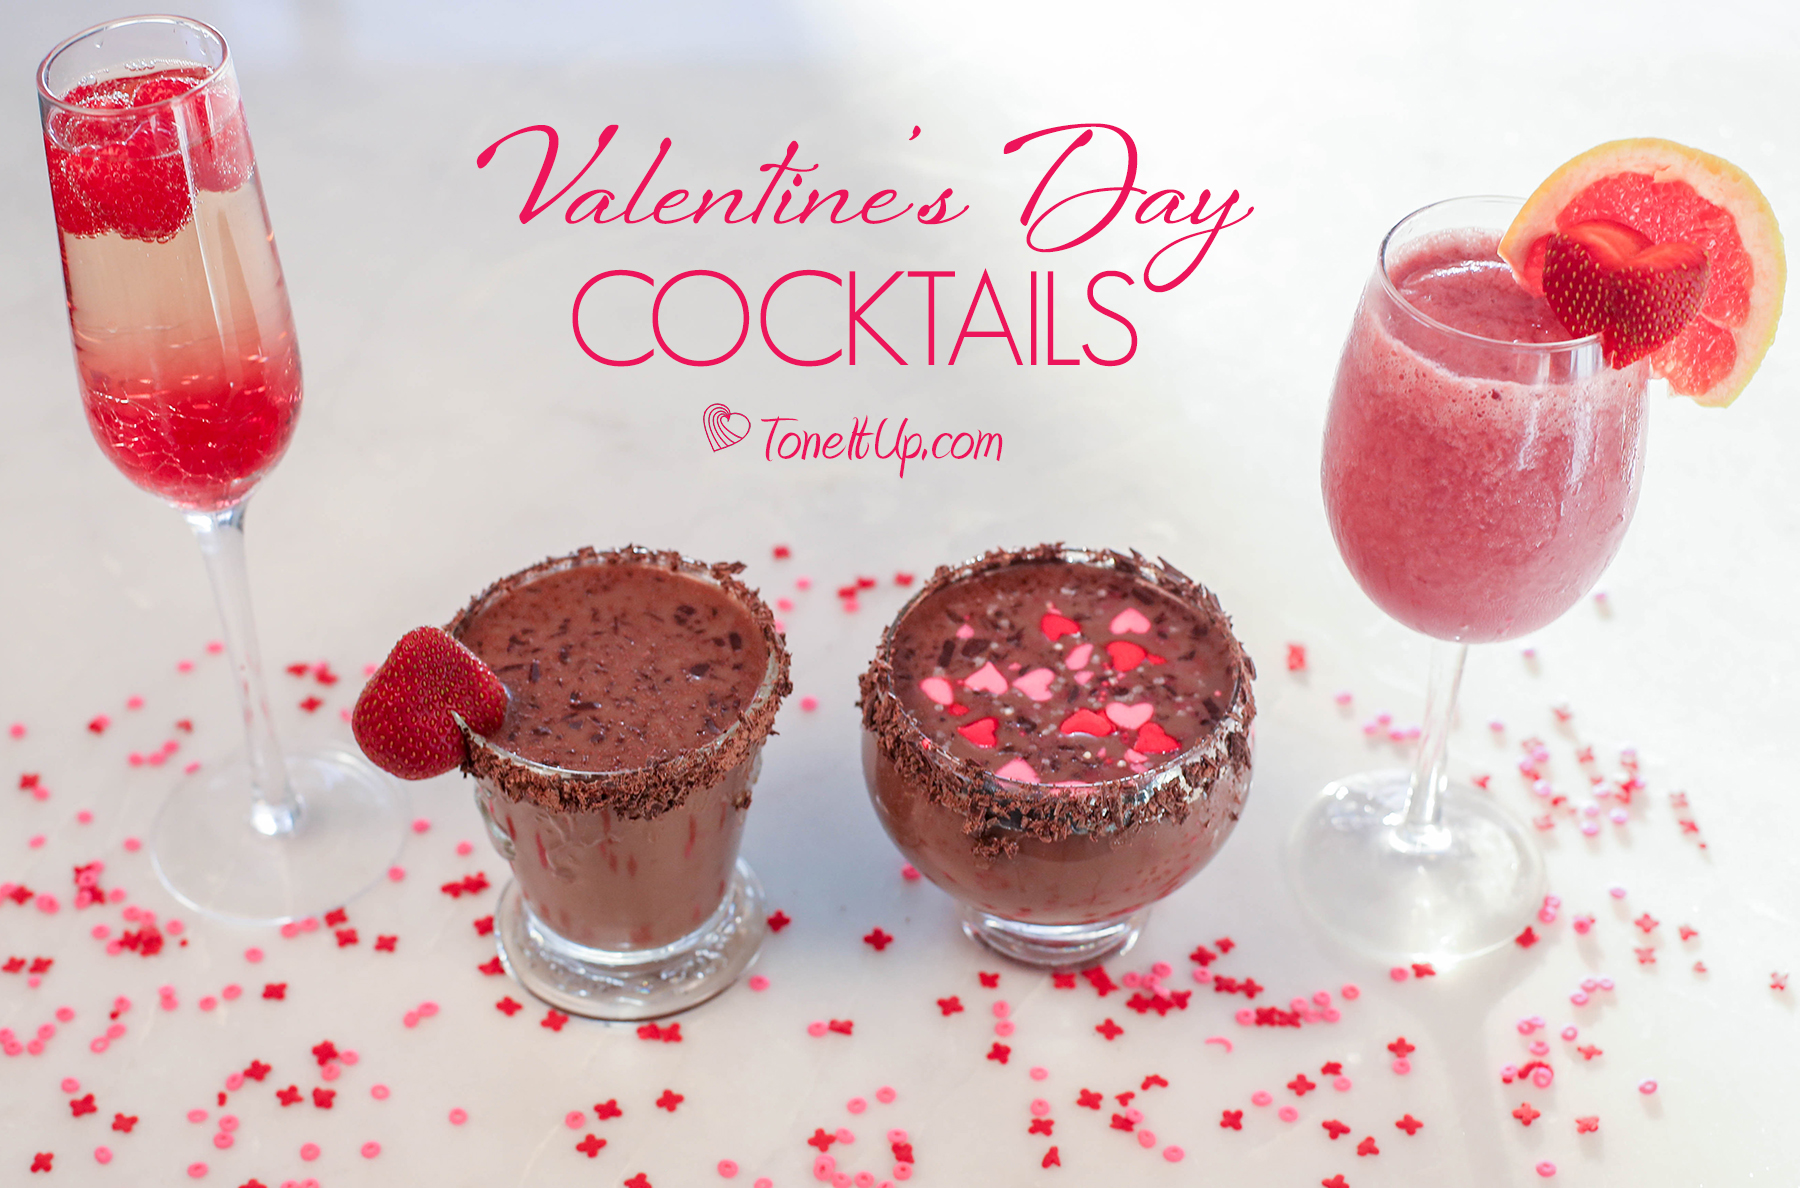 tone it up approved valentines day cocktails toneitupcom